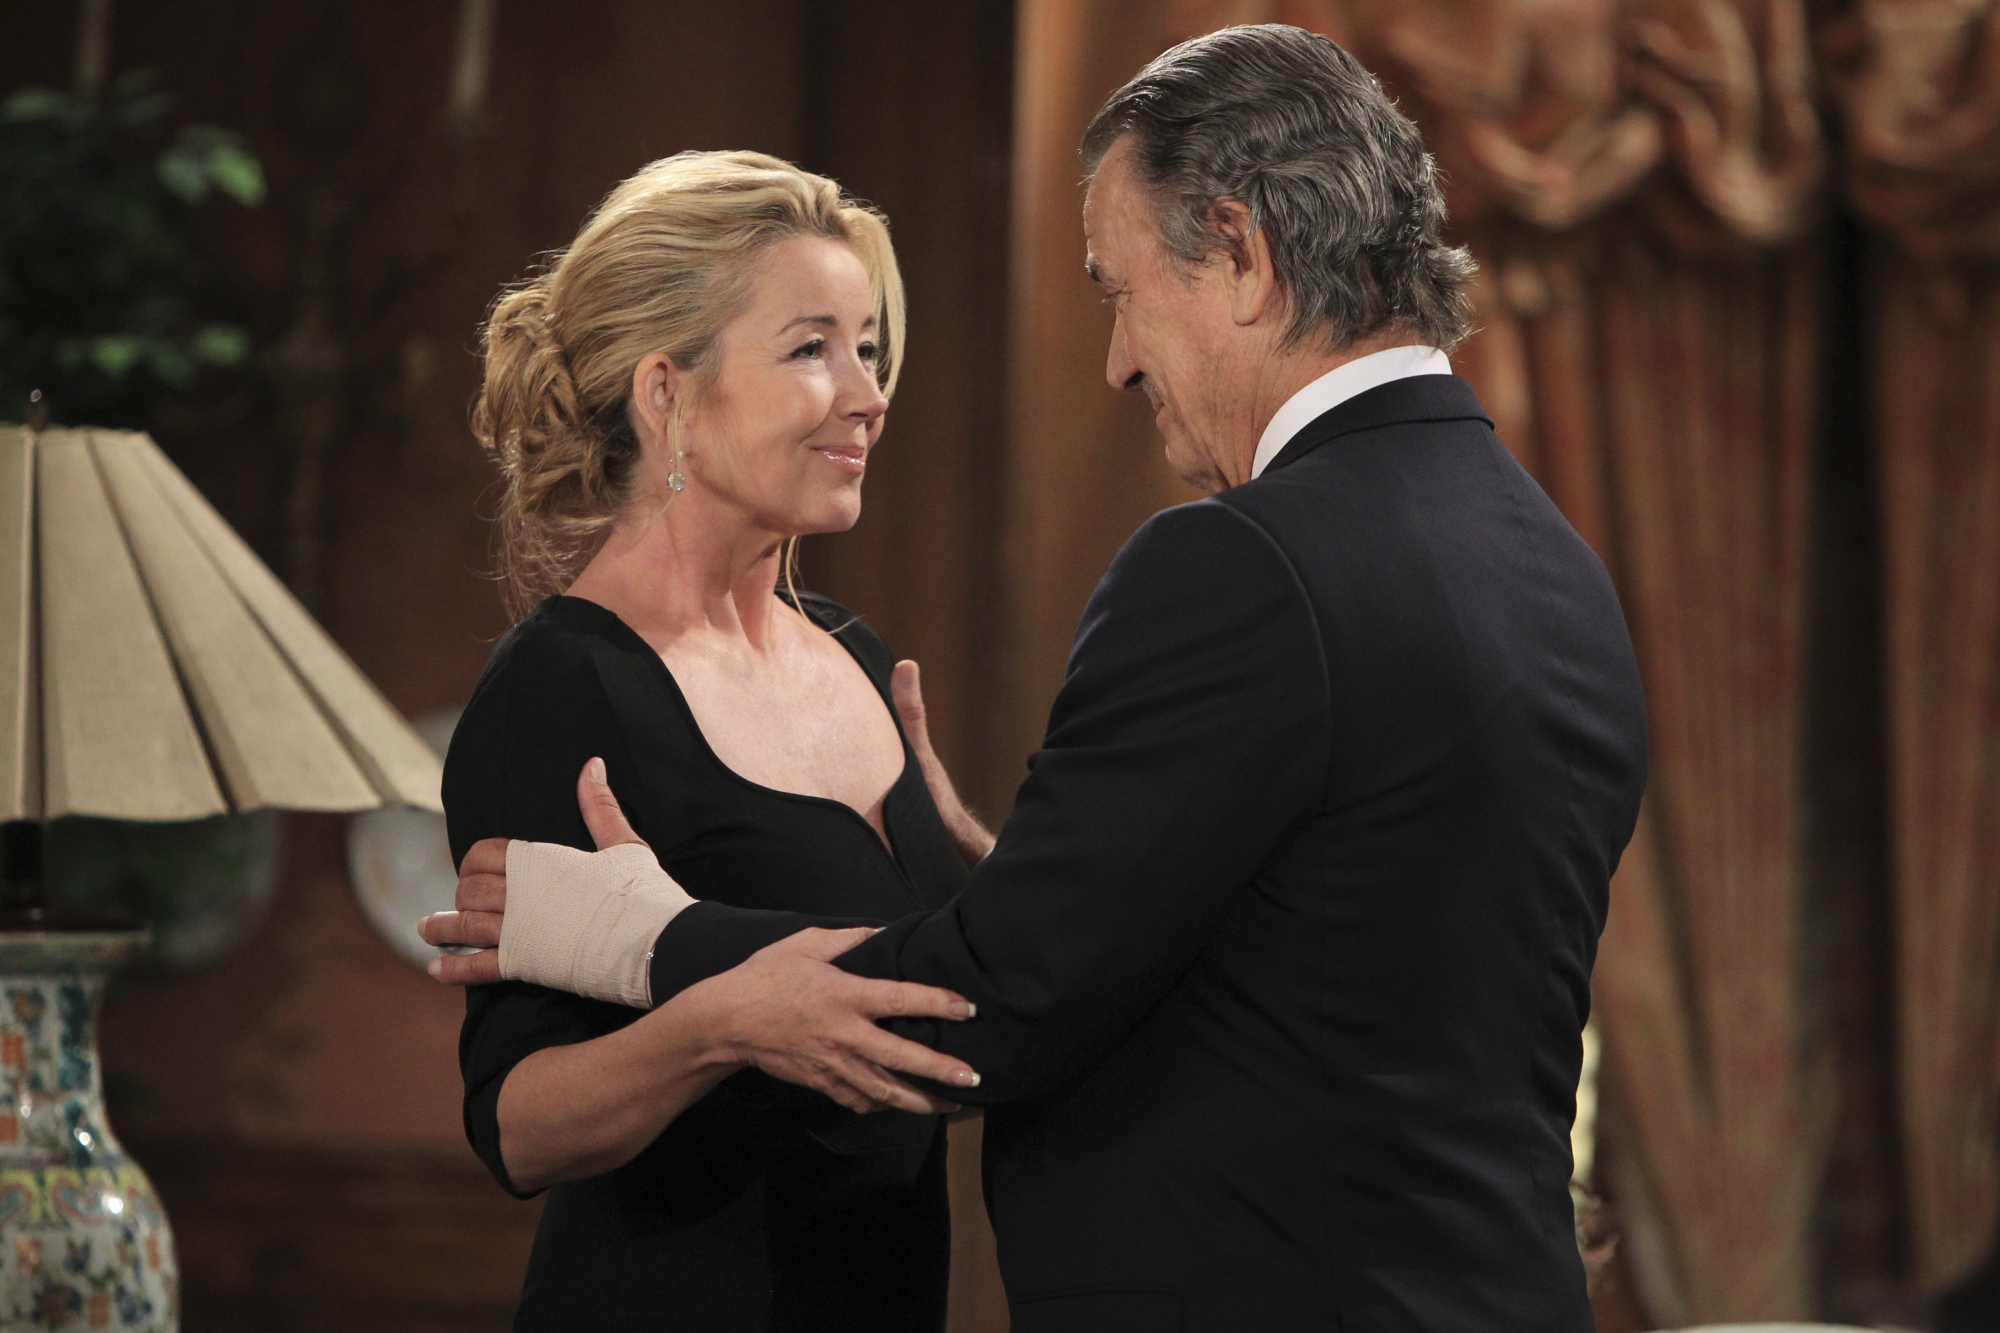 LOS ANGELES - AUGUST 22: 10,000 Episode  Nikki (Melody Thomas Scott, left) and Victor Newman (Eric Braeden, right) joyfully reunite on the 10,000th episode of CBS' THE YOUNG & THE RESTLESS airing Thursday, Sept. 27. (Photo by Sonja Flemming/CBS via Getty Images)